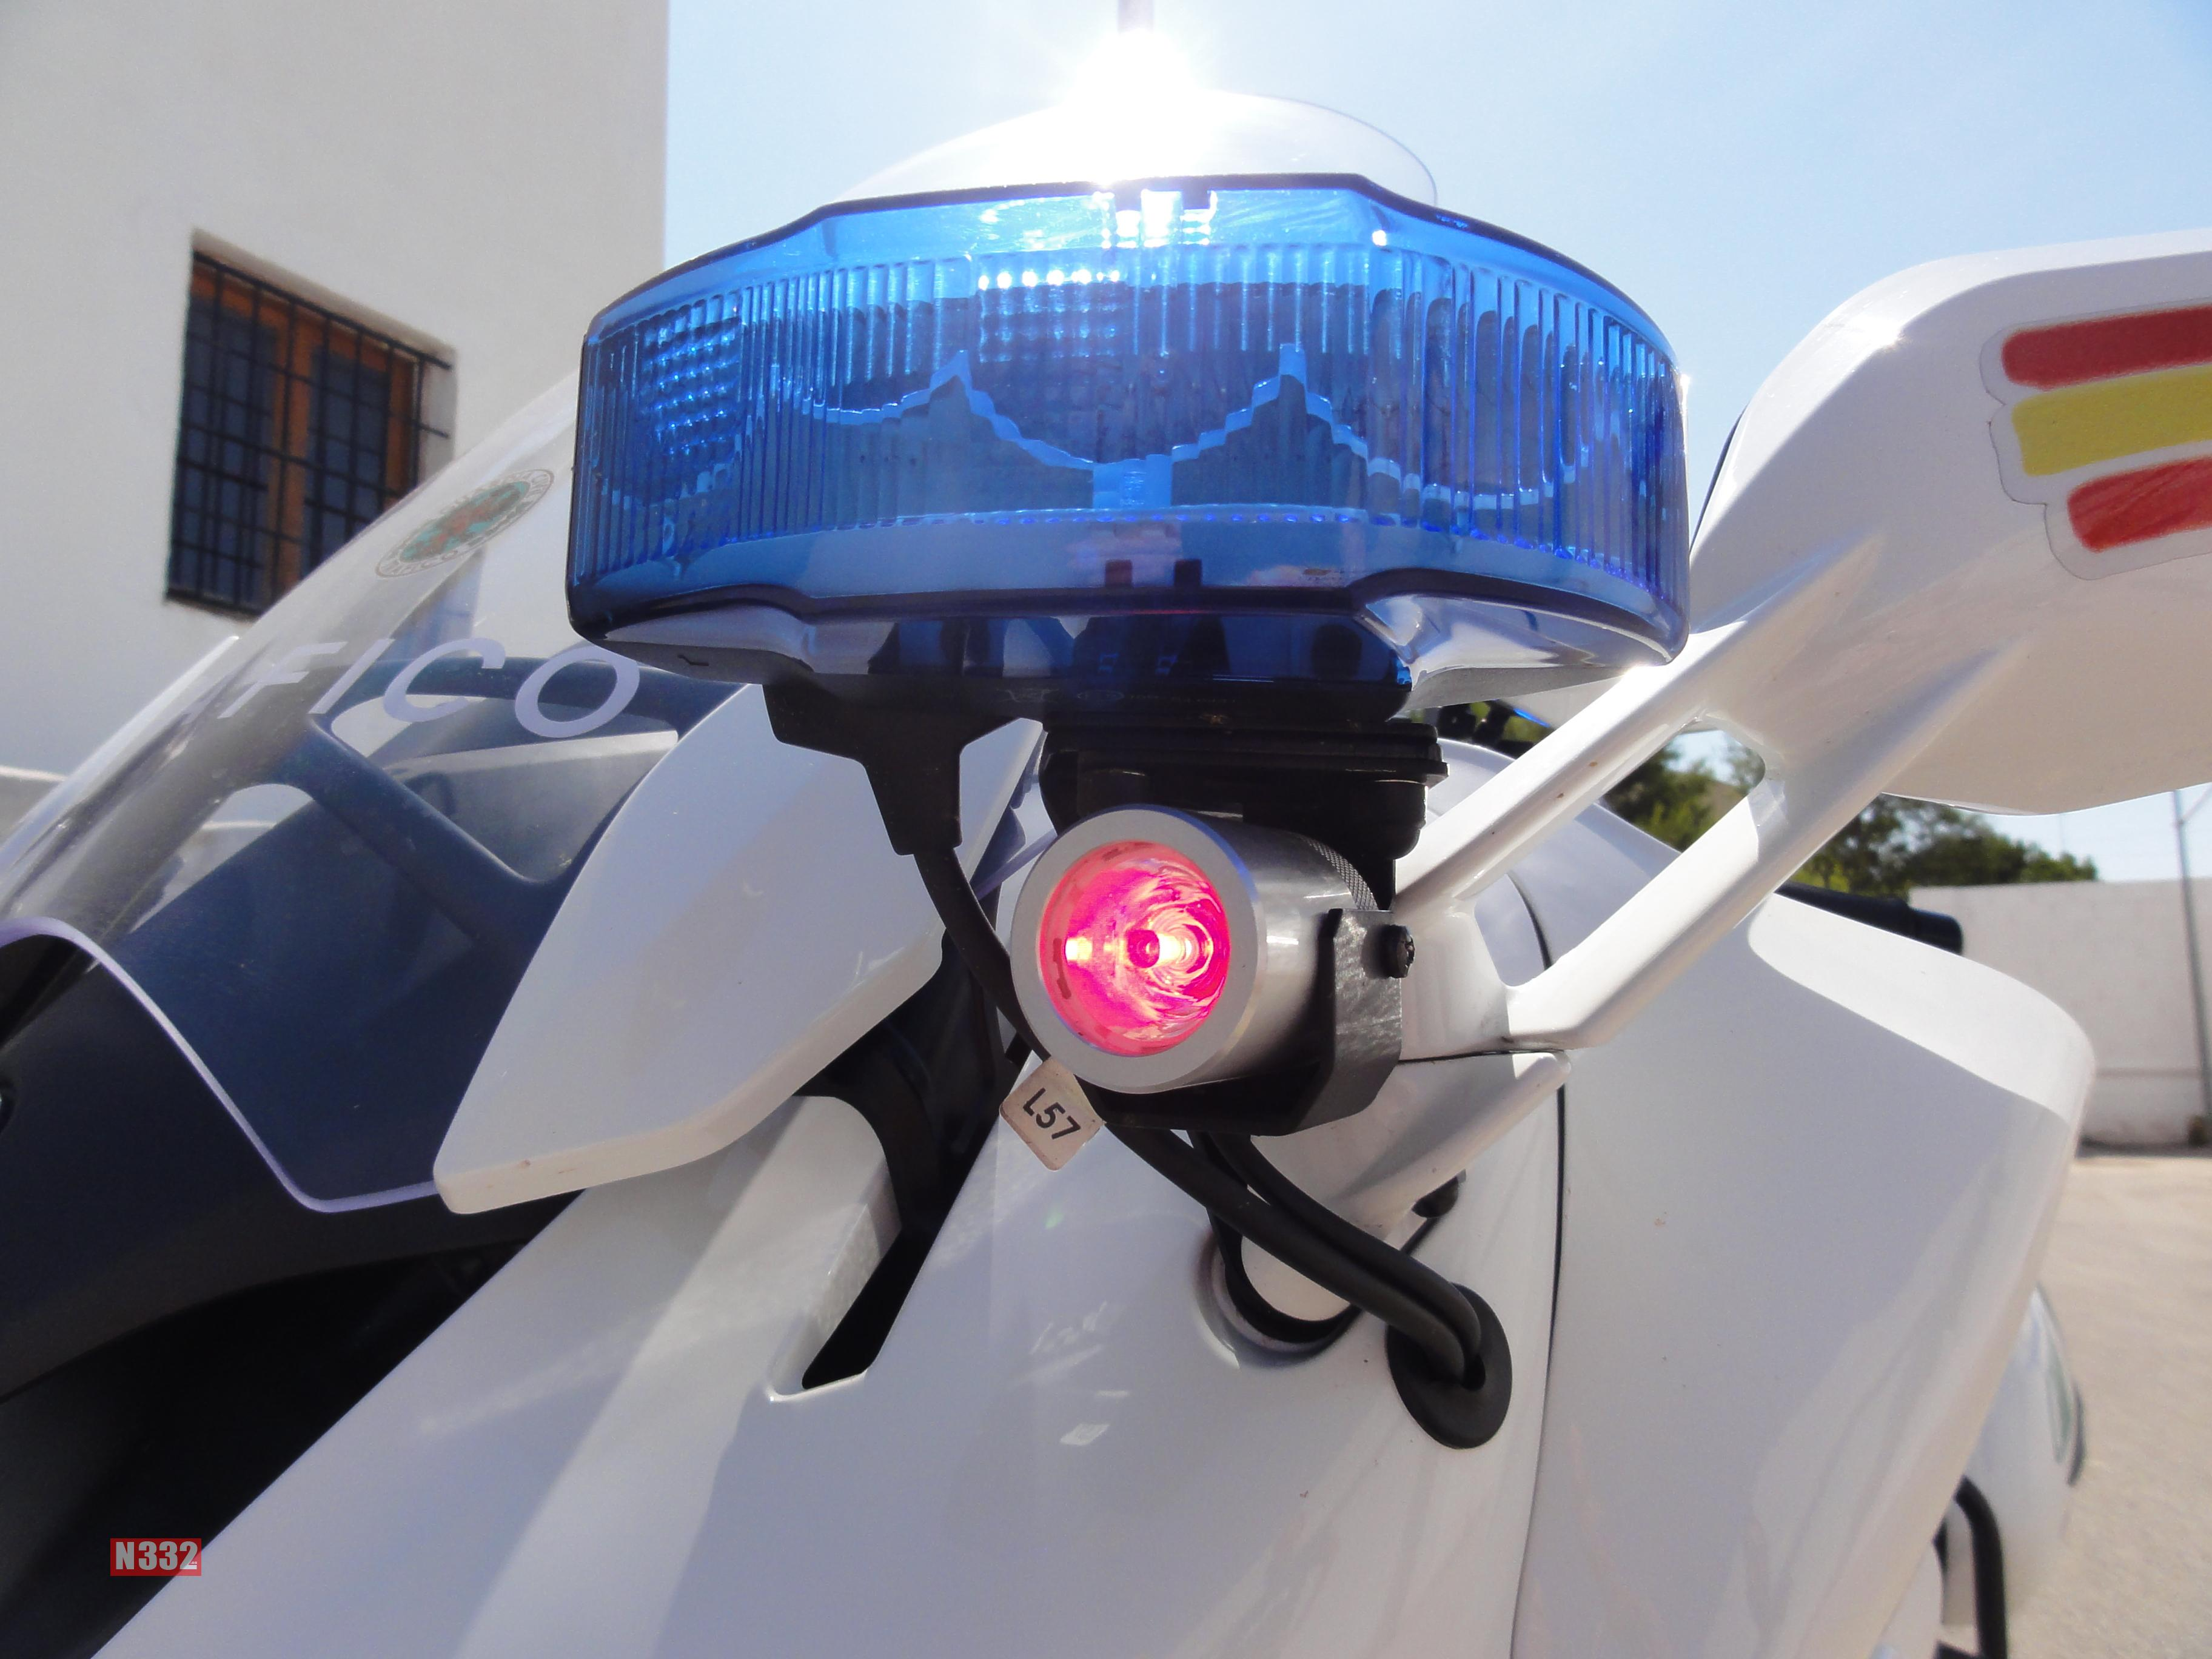 New Radars on Motorbikes – NO! The Myths Busted